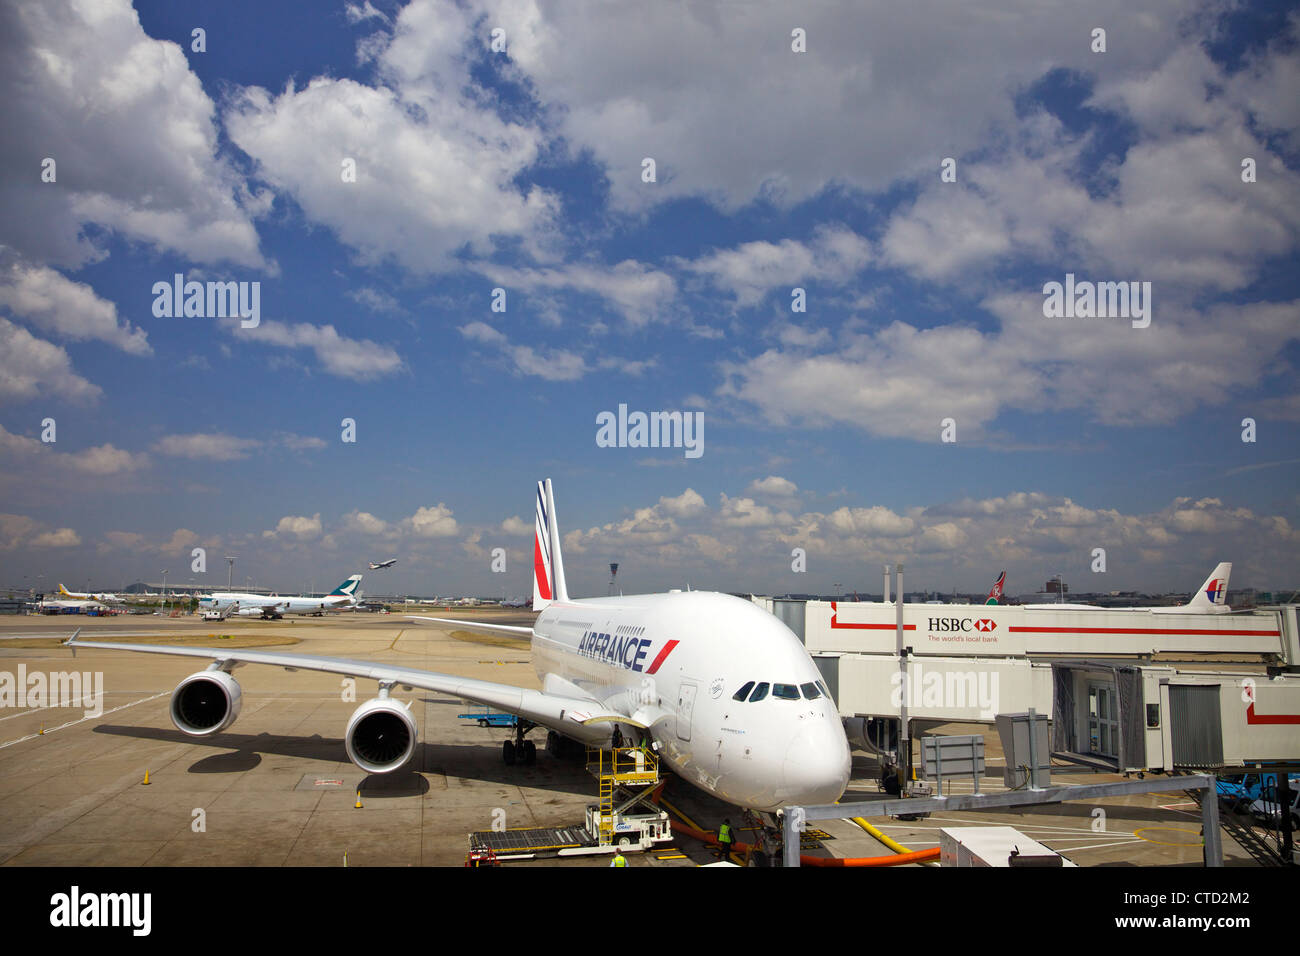 Air France Airbus A380 standing outside Terminal 4, Heathrow Airport, London, England, UK, United Kingdom, GB, - Stock Image